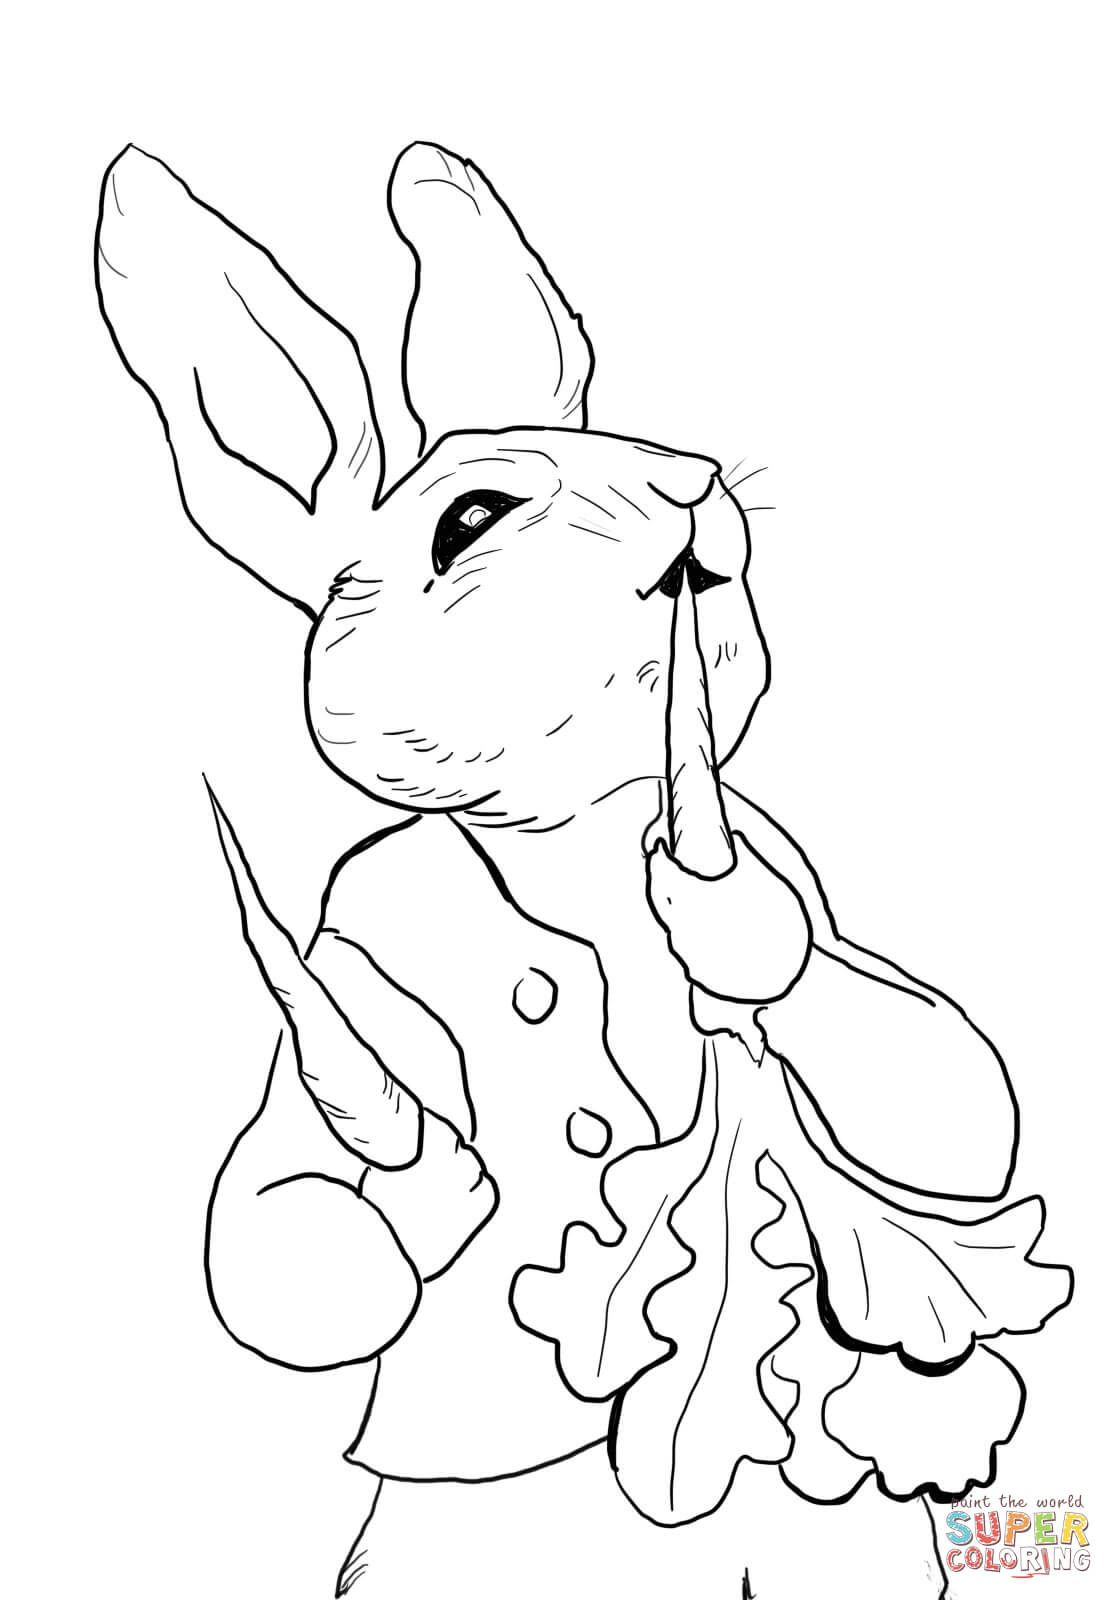 Peter Rabbit Coloring Pages Printable | Bunny Application ...